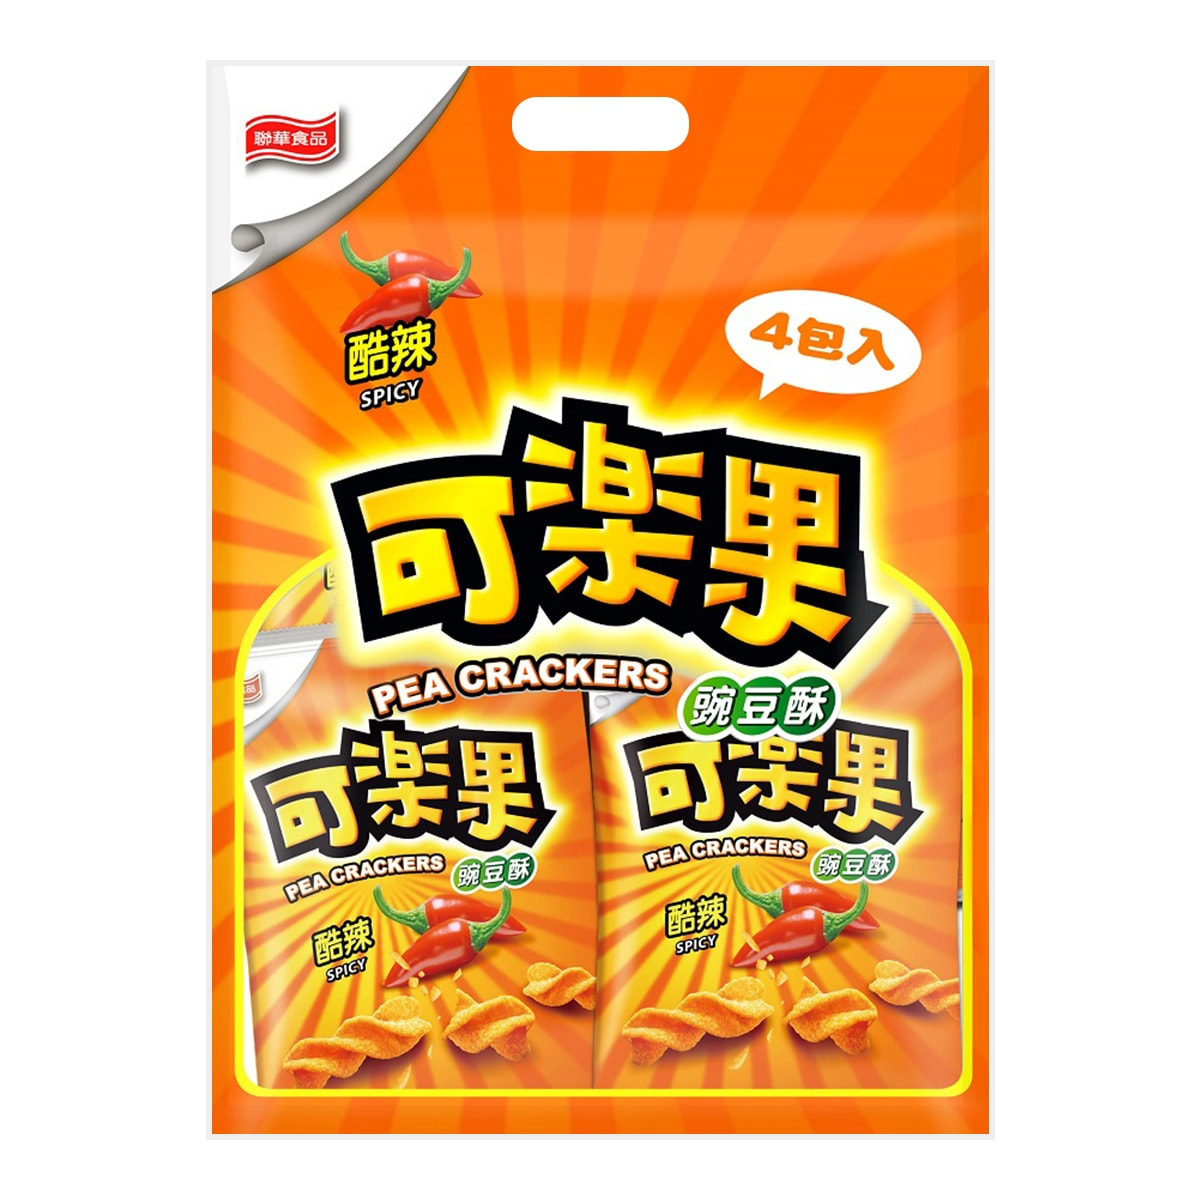 LIANHWA Koloko Pea Crackers Spicy 228g